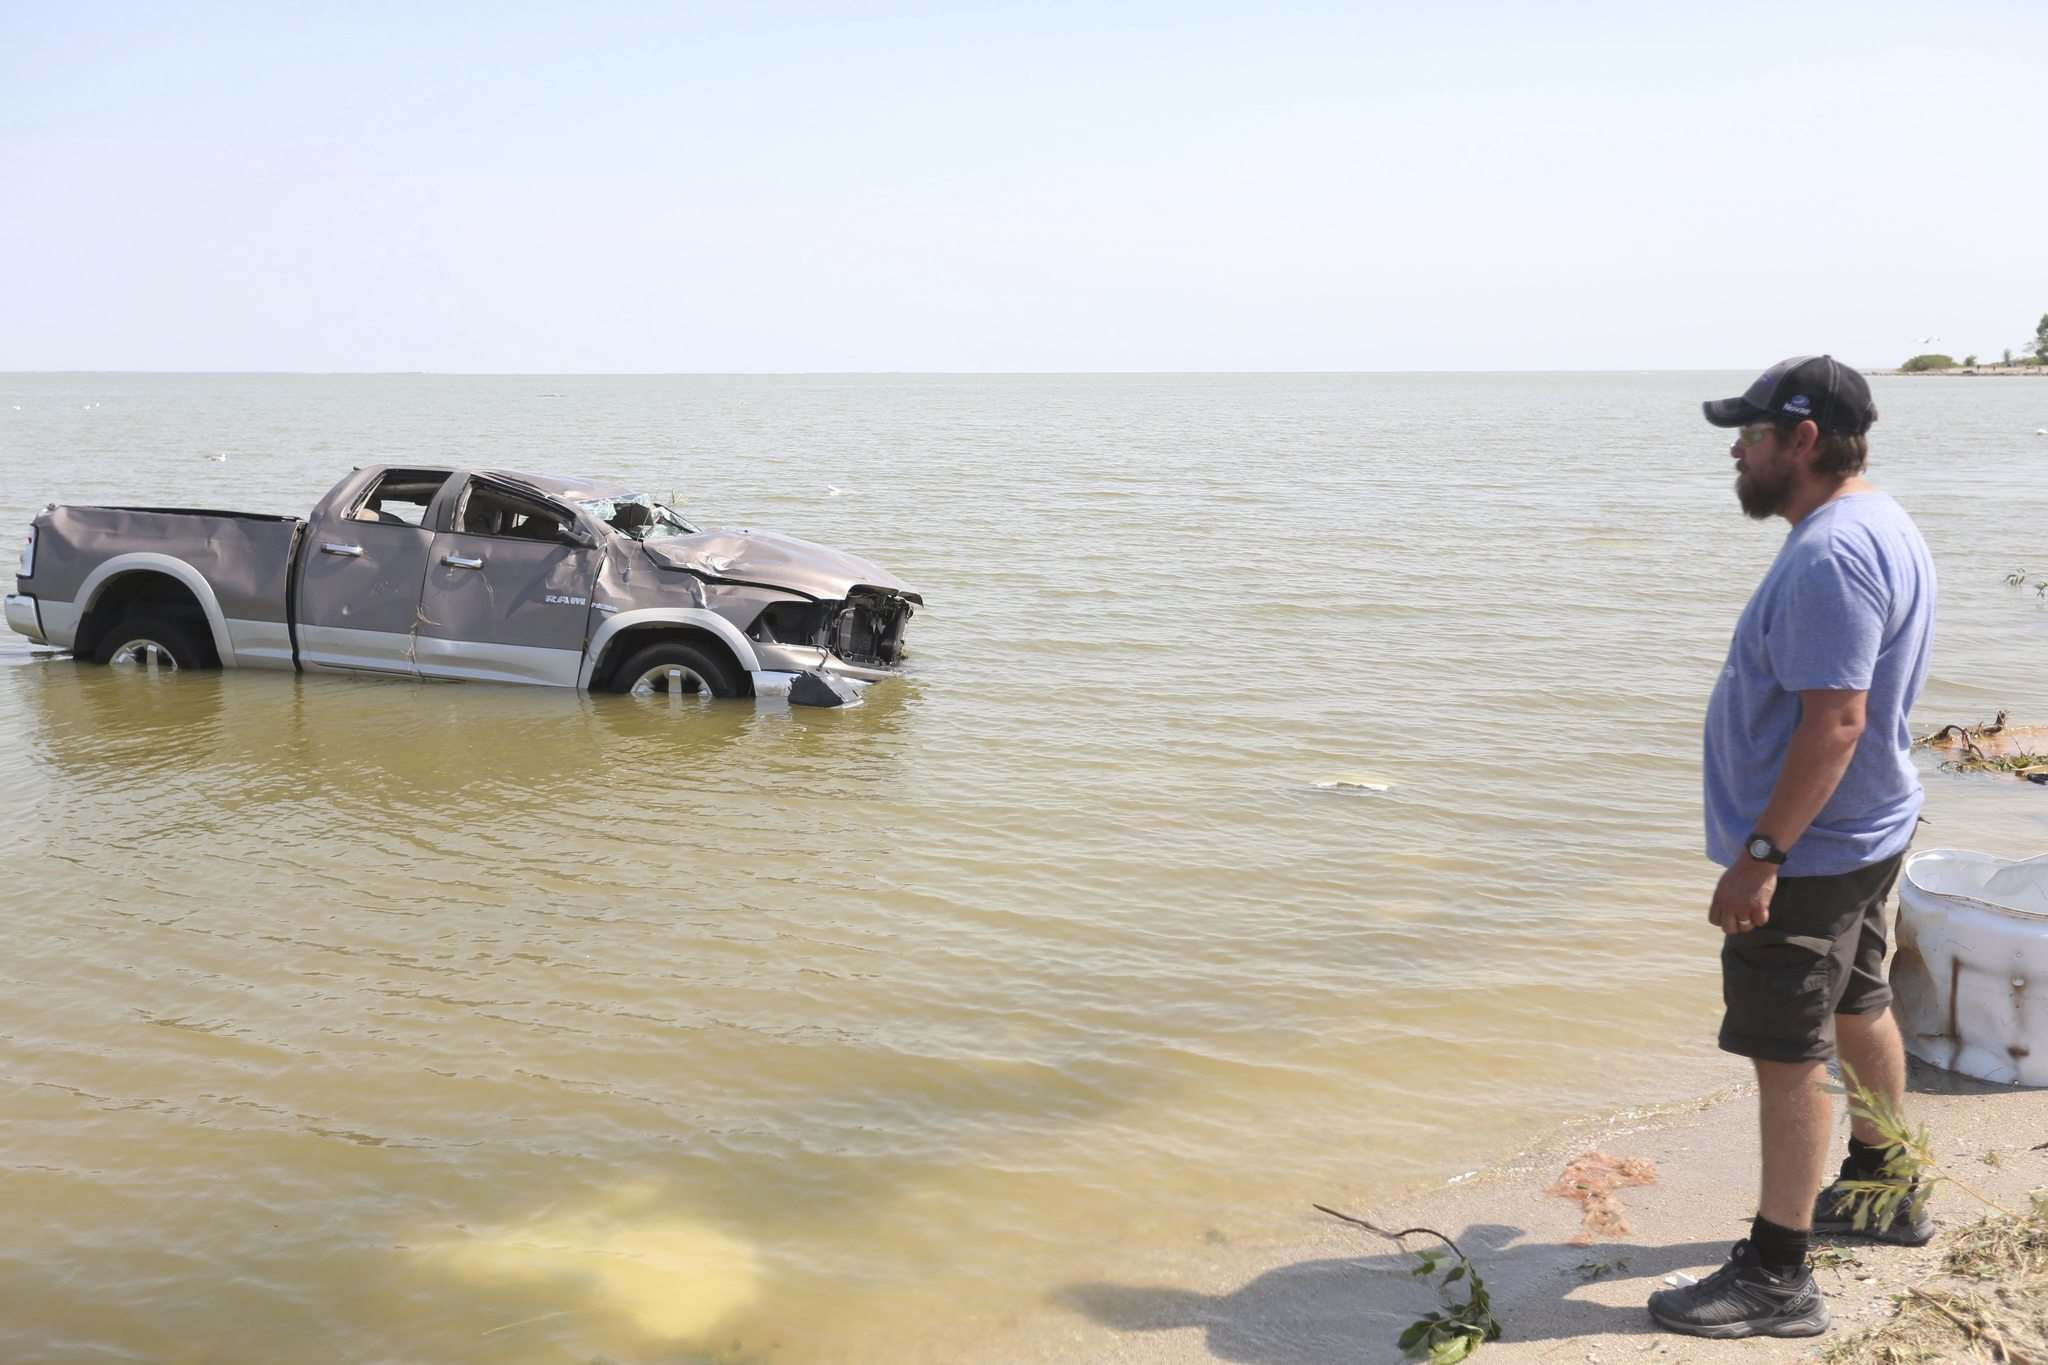 Shawn Gurke, a resident of Alonsa, watches a truck floating in Lake Manitoba after a tornado hit on Friday. (Melissa Verge / Brandon Sun)</p>